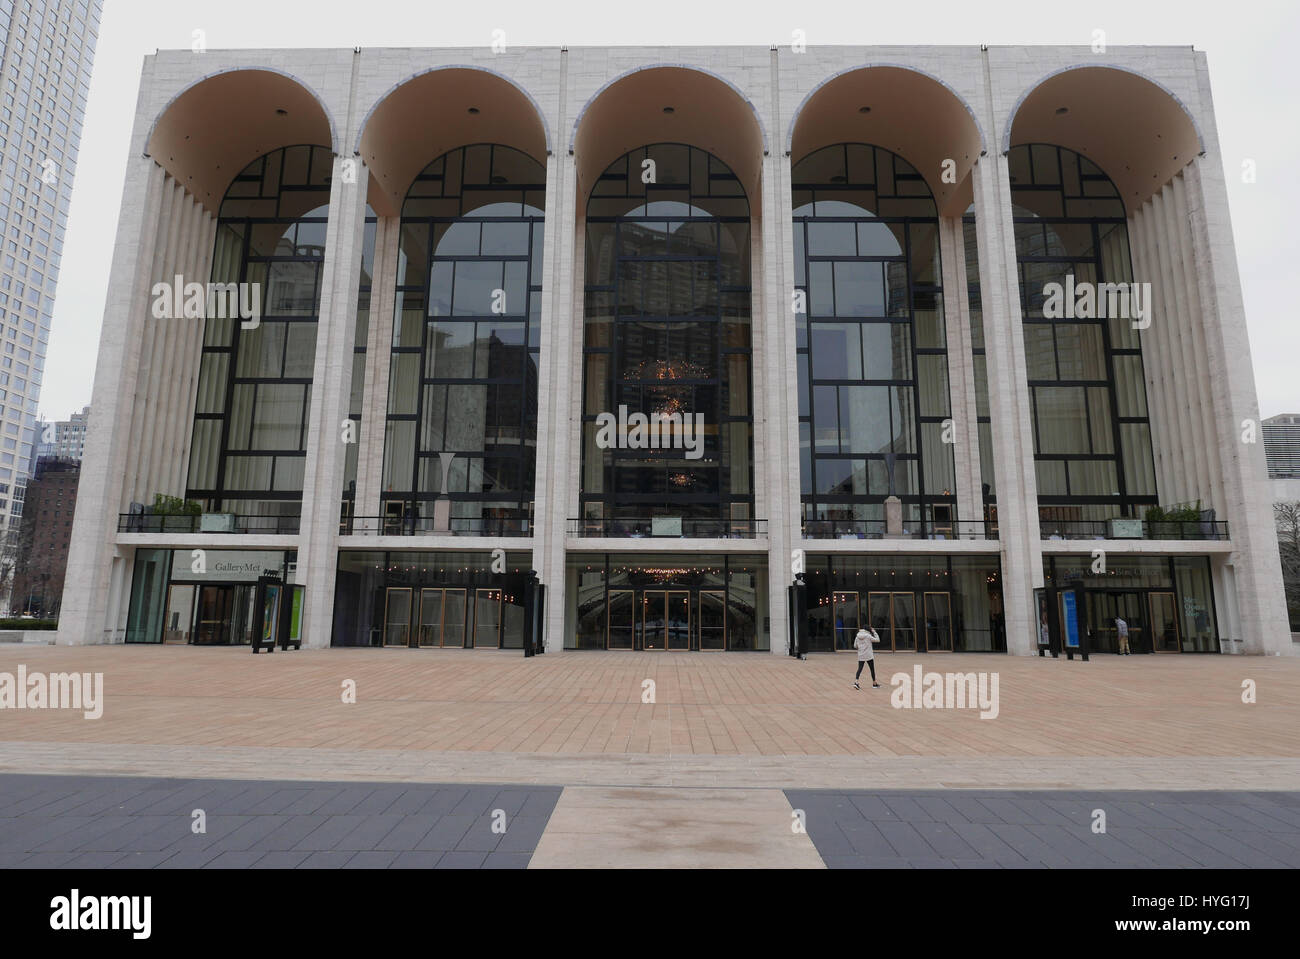 The Metropolitan Opera House at Lincoln Center in New York City - Stock Image